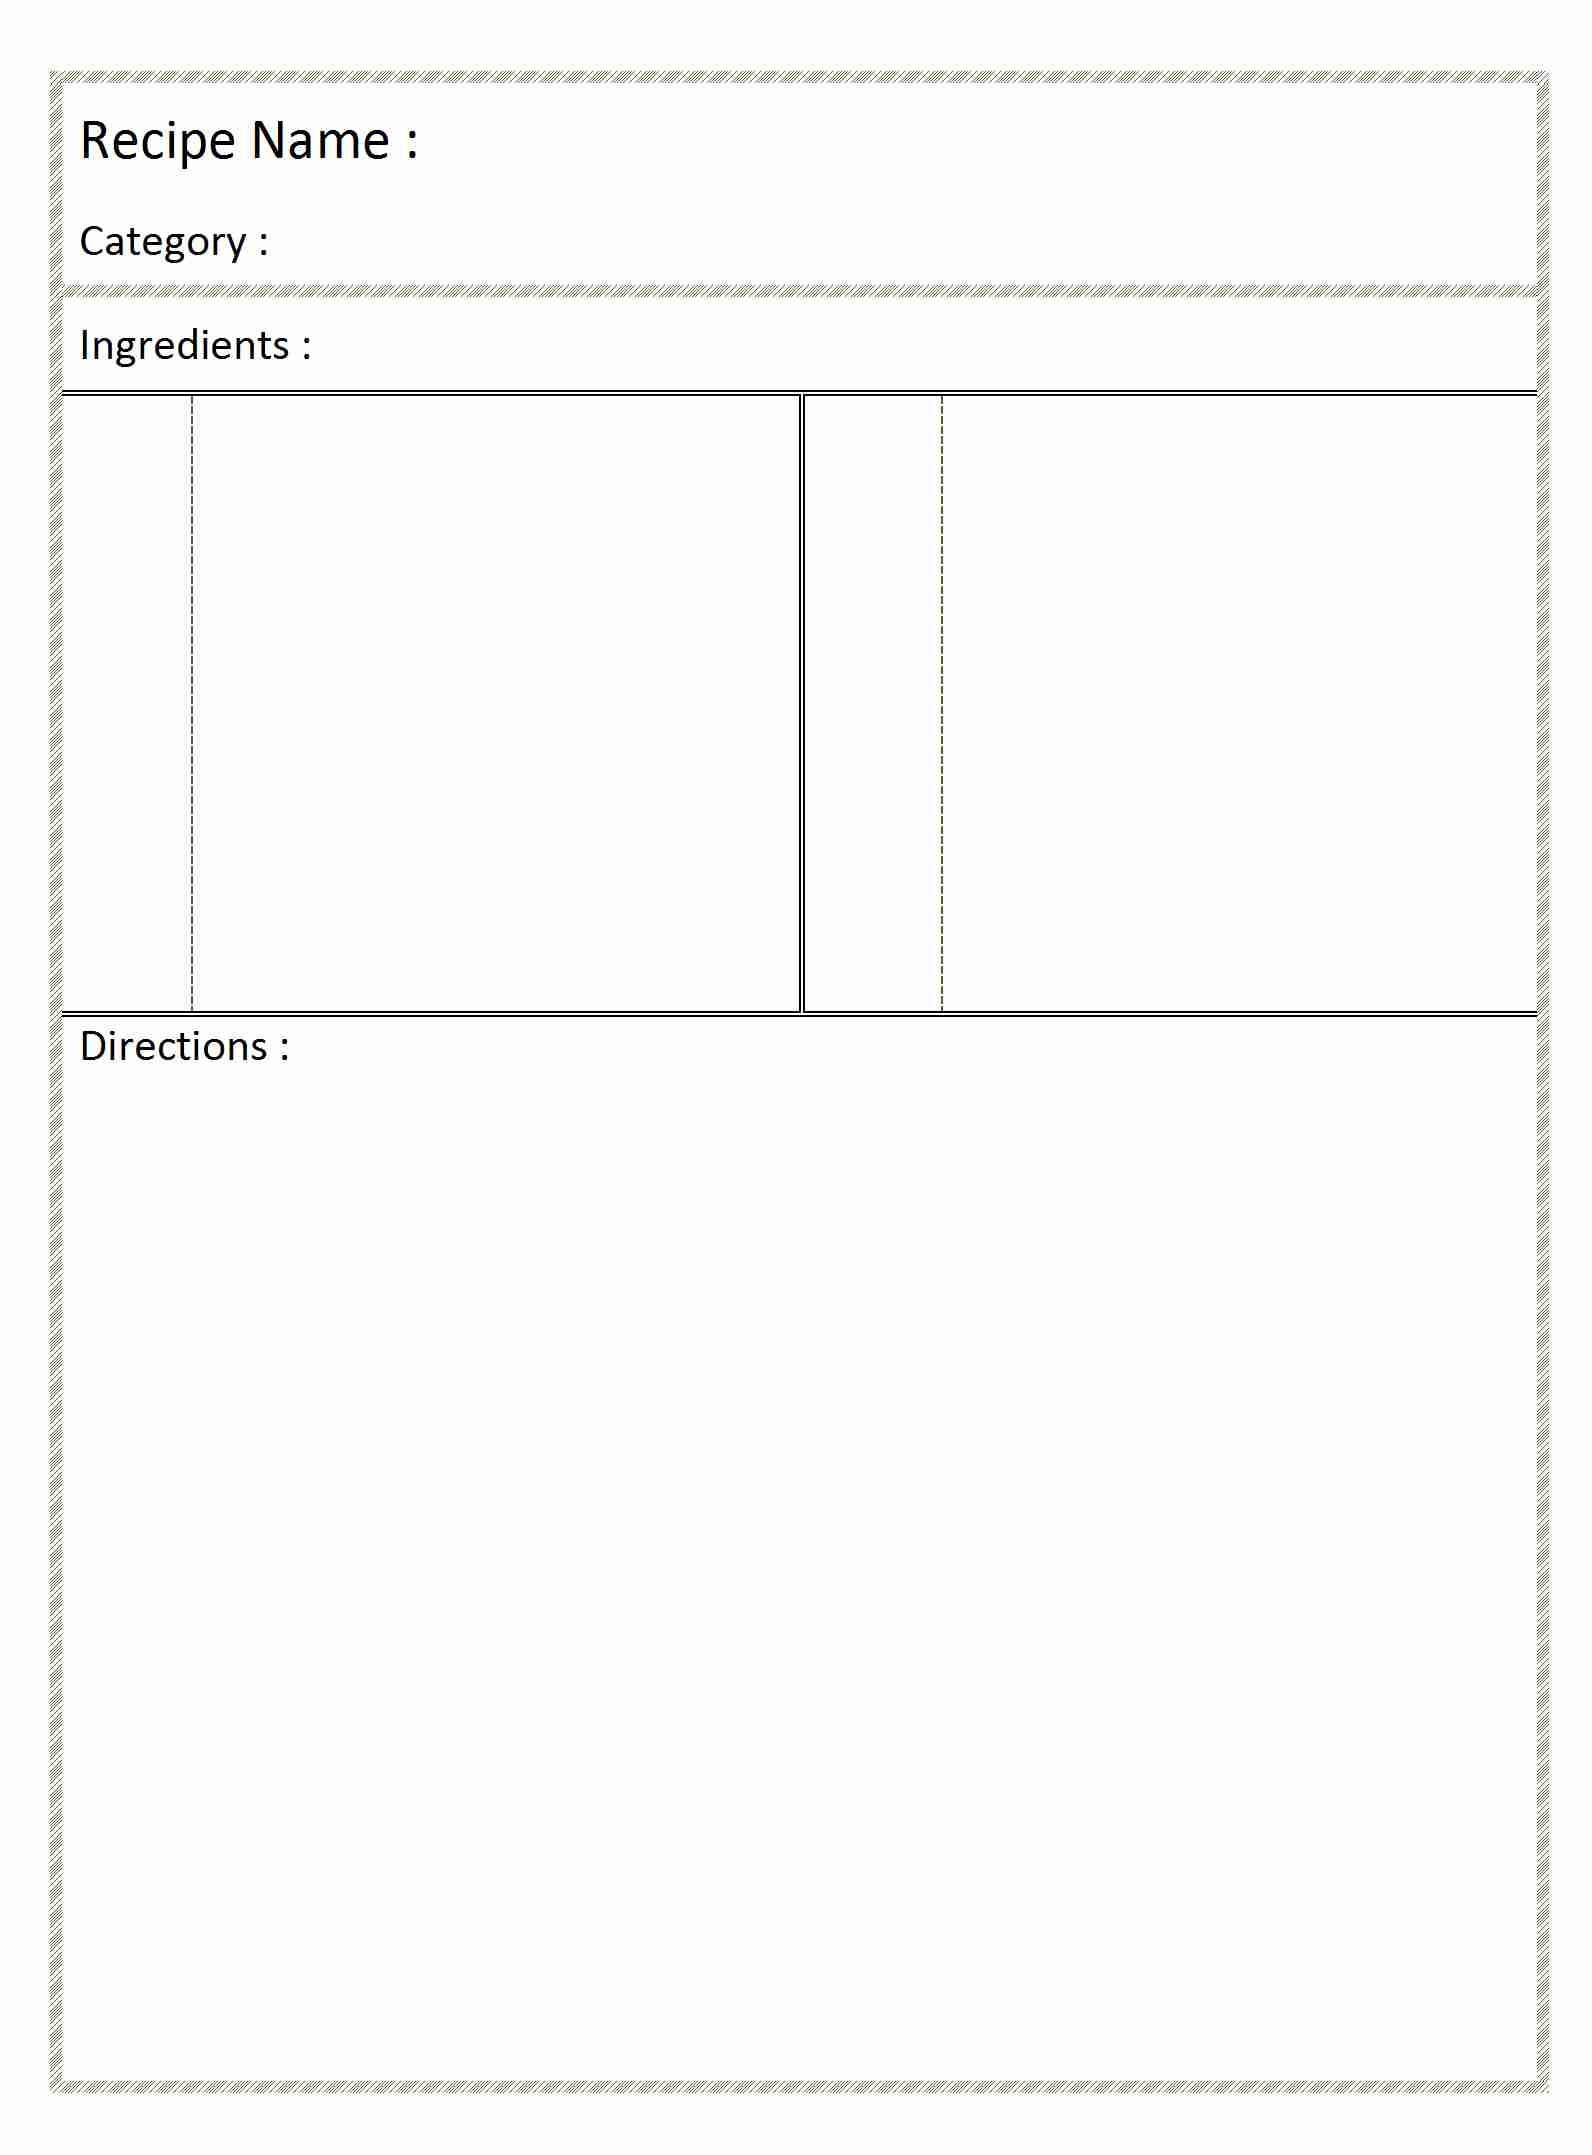 Blank Recipe Card | Freewordtemplates.net